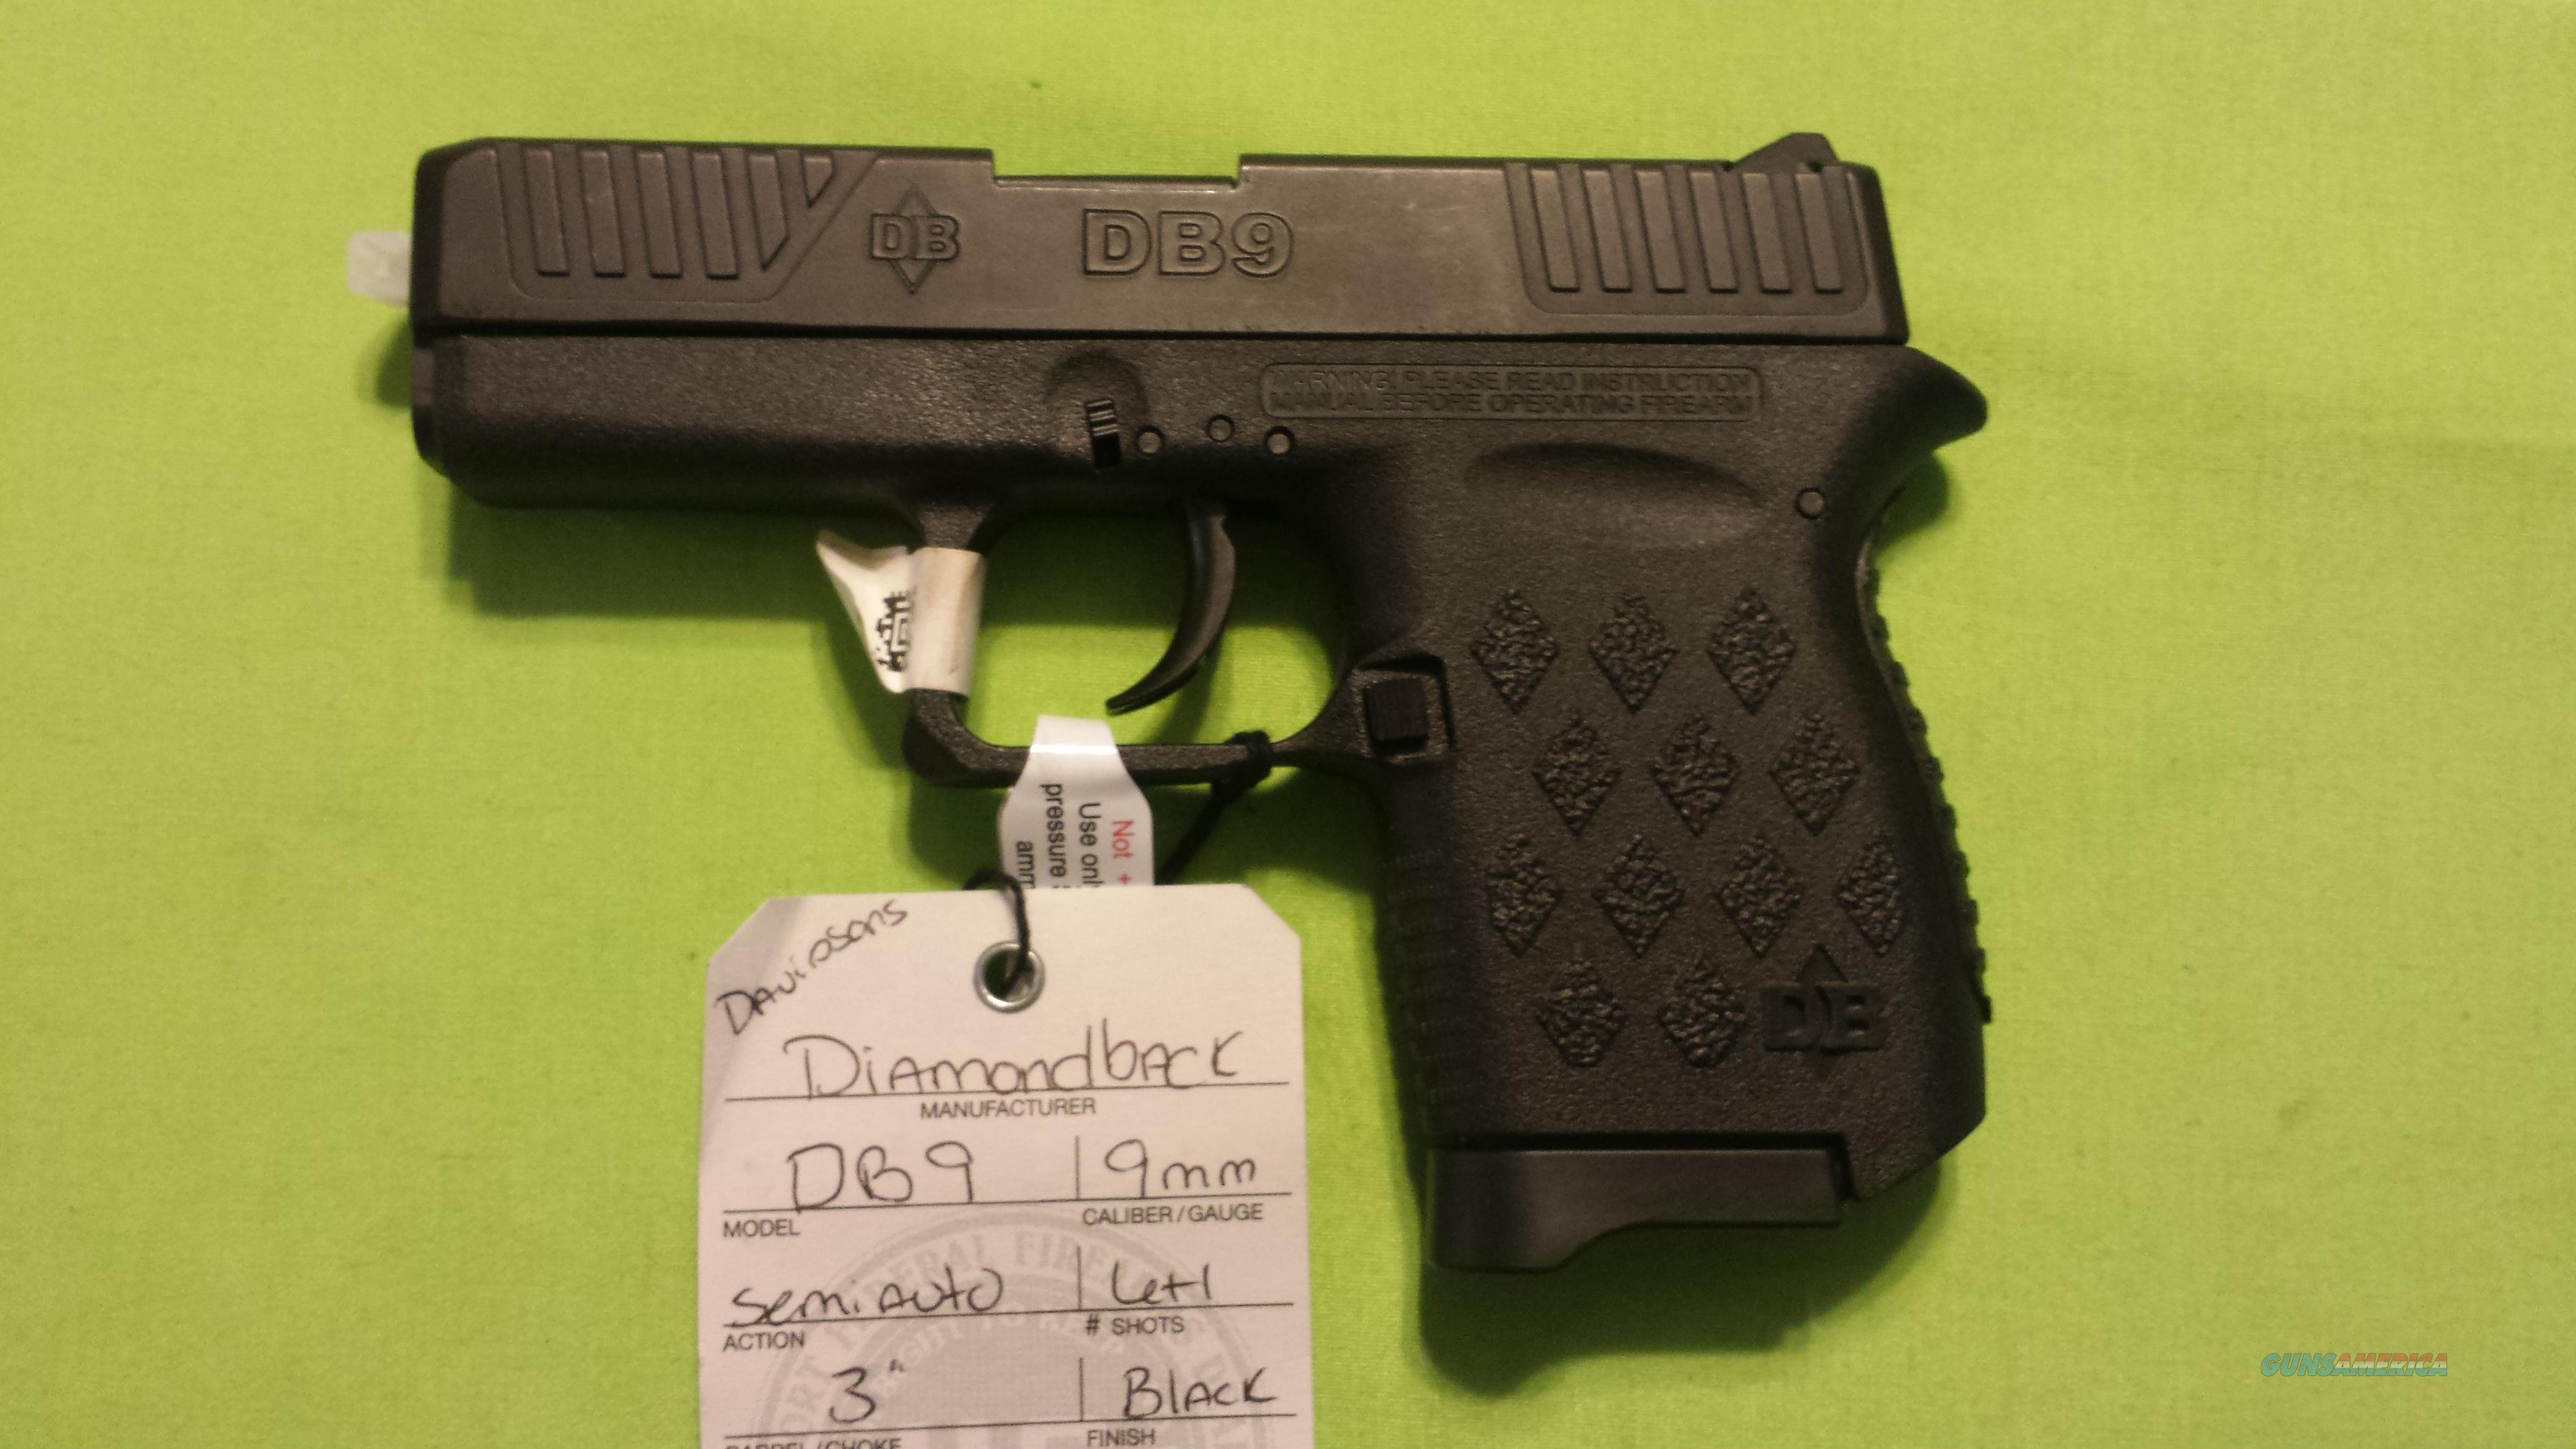 DIAMONDBACK DB9 DB 9 9MM BLACK 6+1 POLYMER  Guns > Pistols > Diamondback Pistols